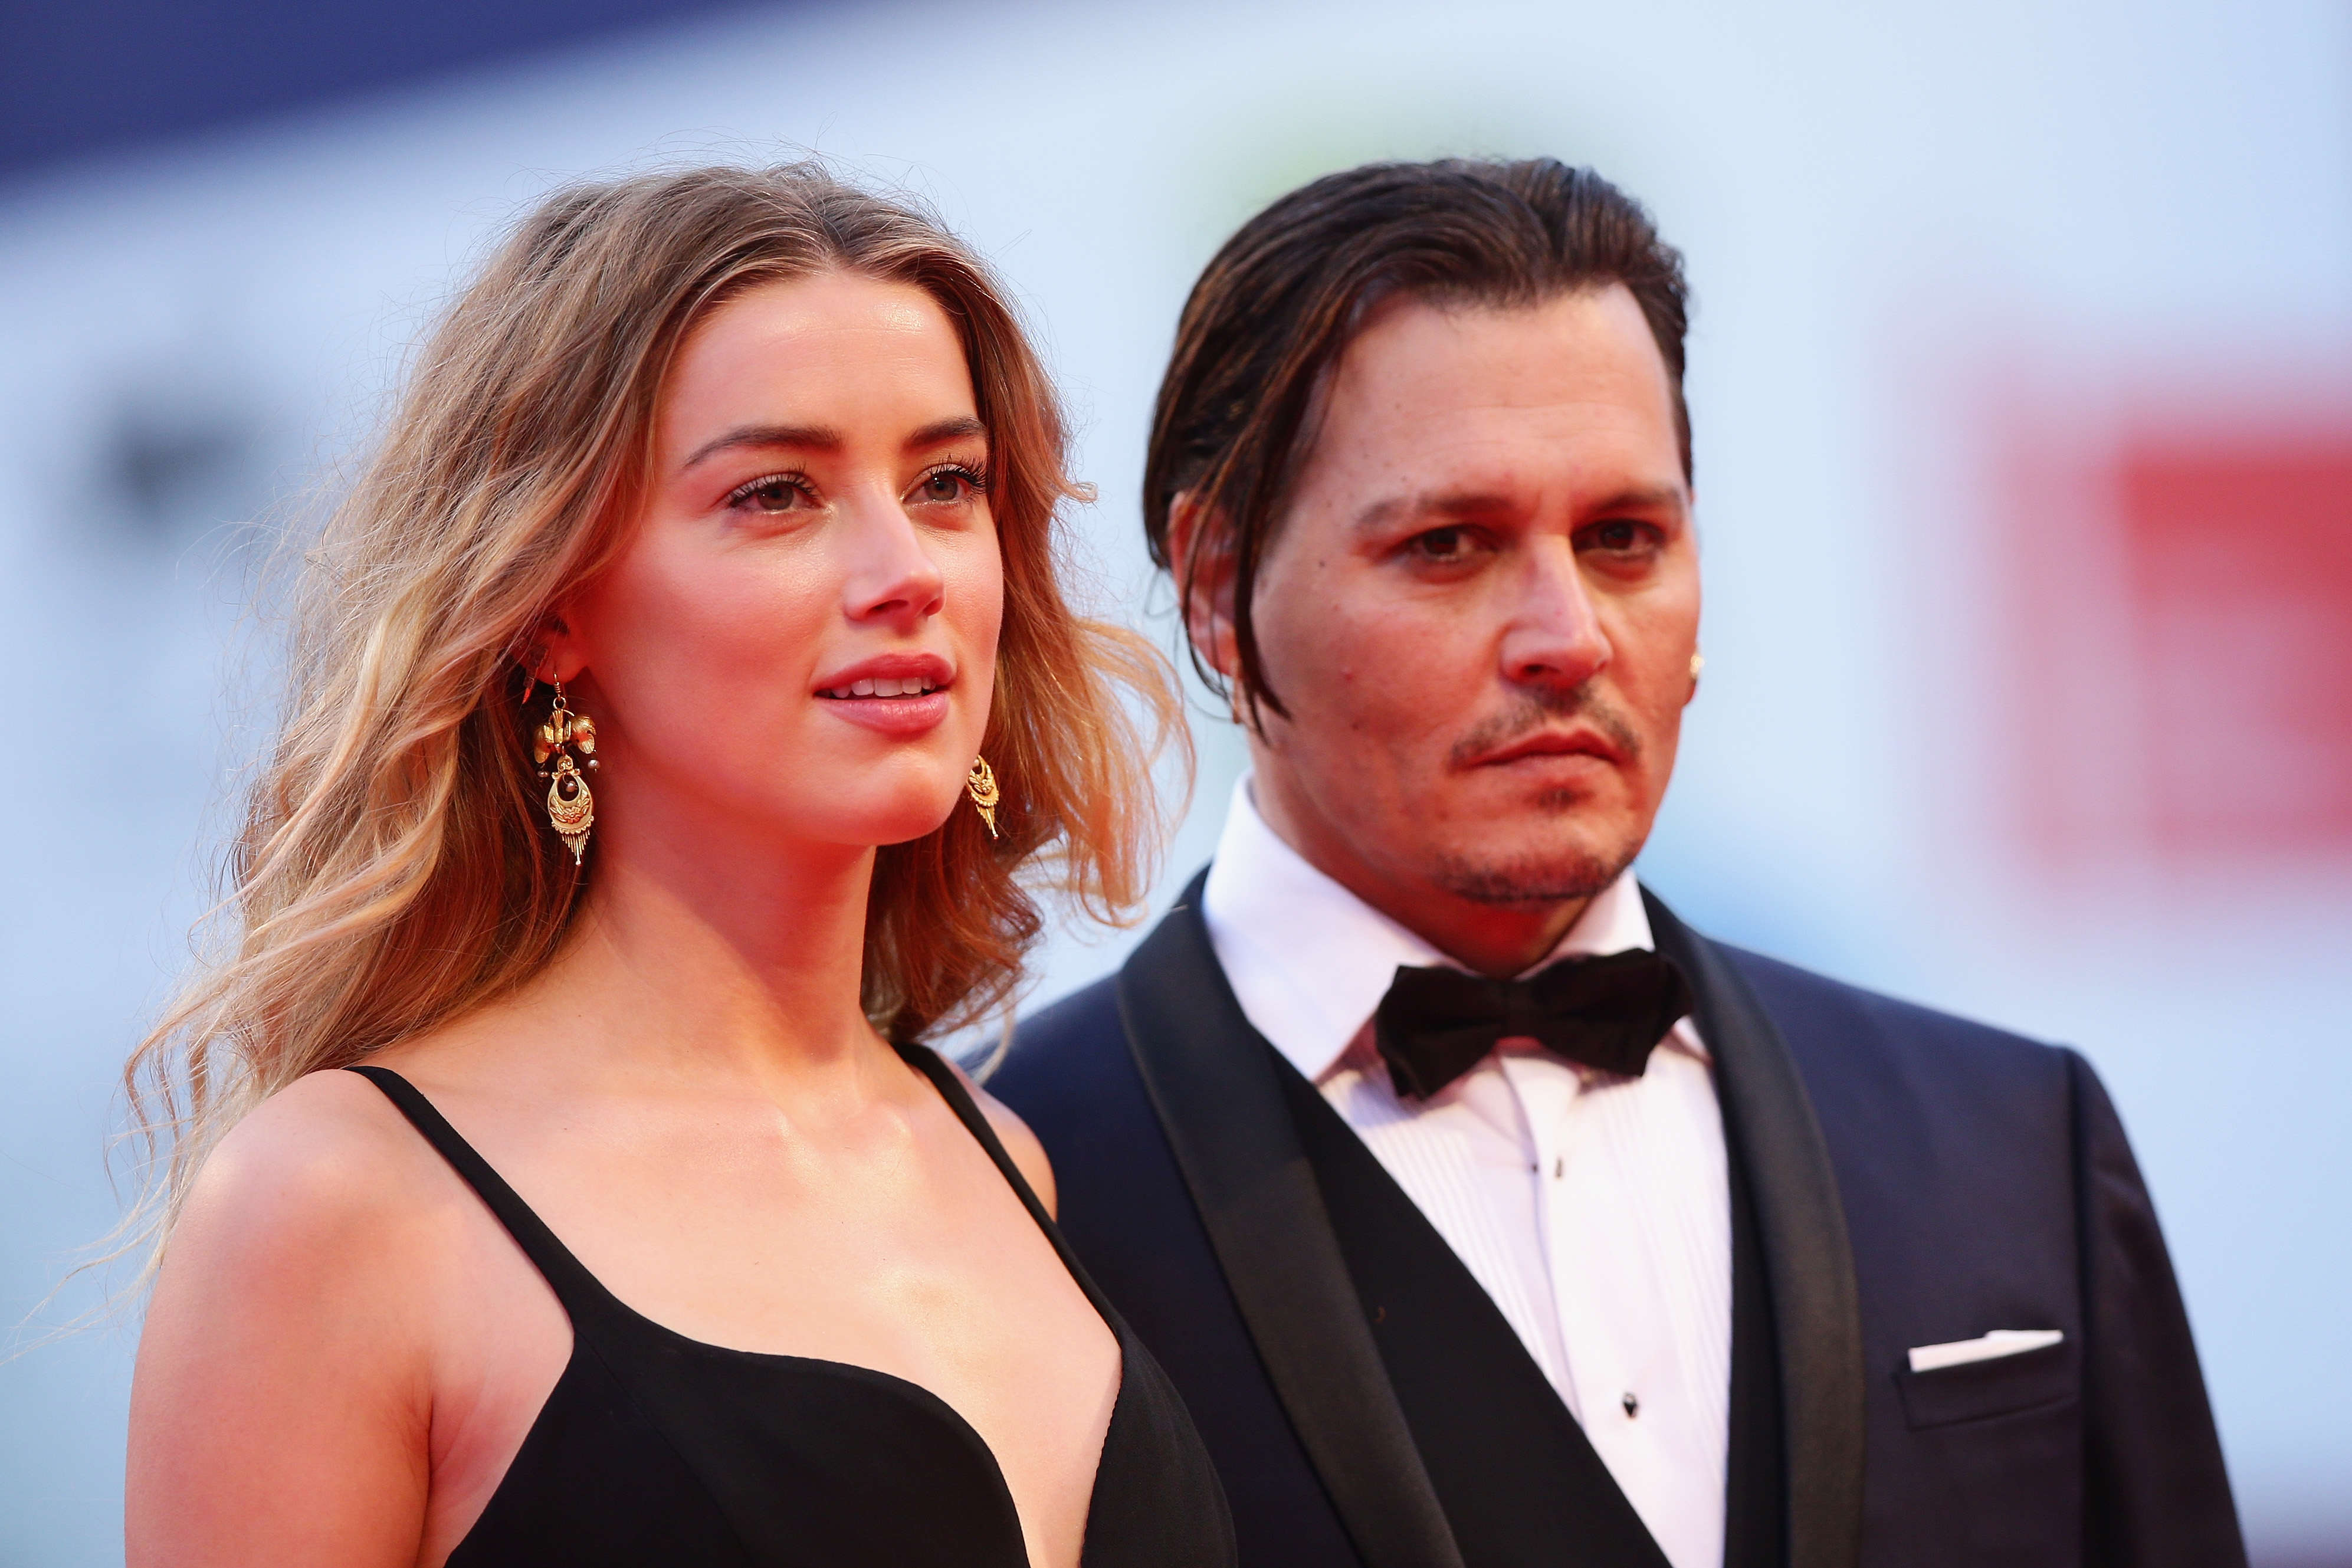 GettyImages 486487546 Amber Heard And Johnny Depps Divorce Just Took A Disappointing Turn